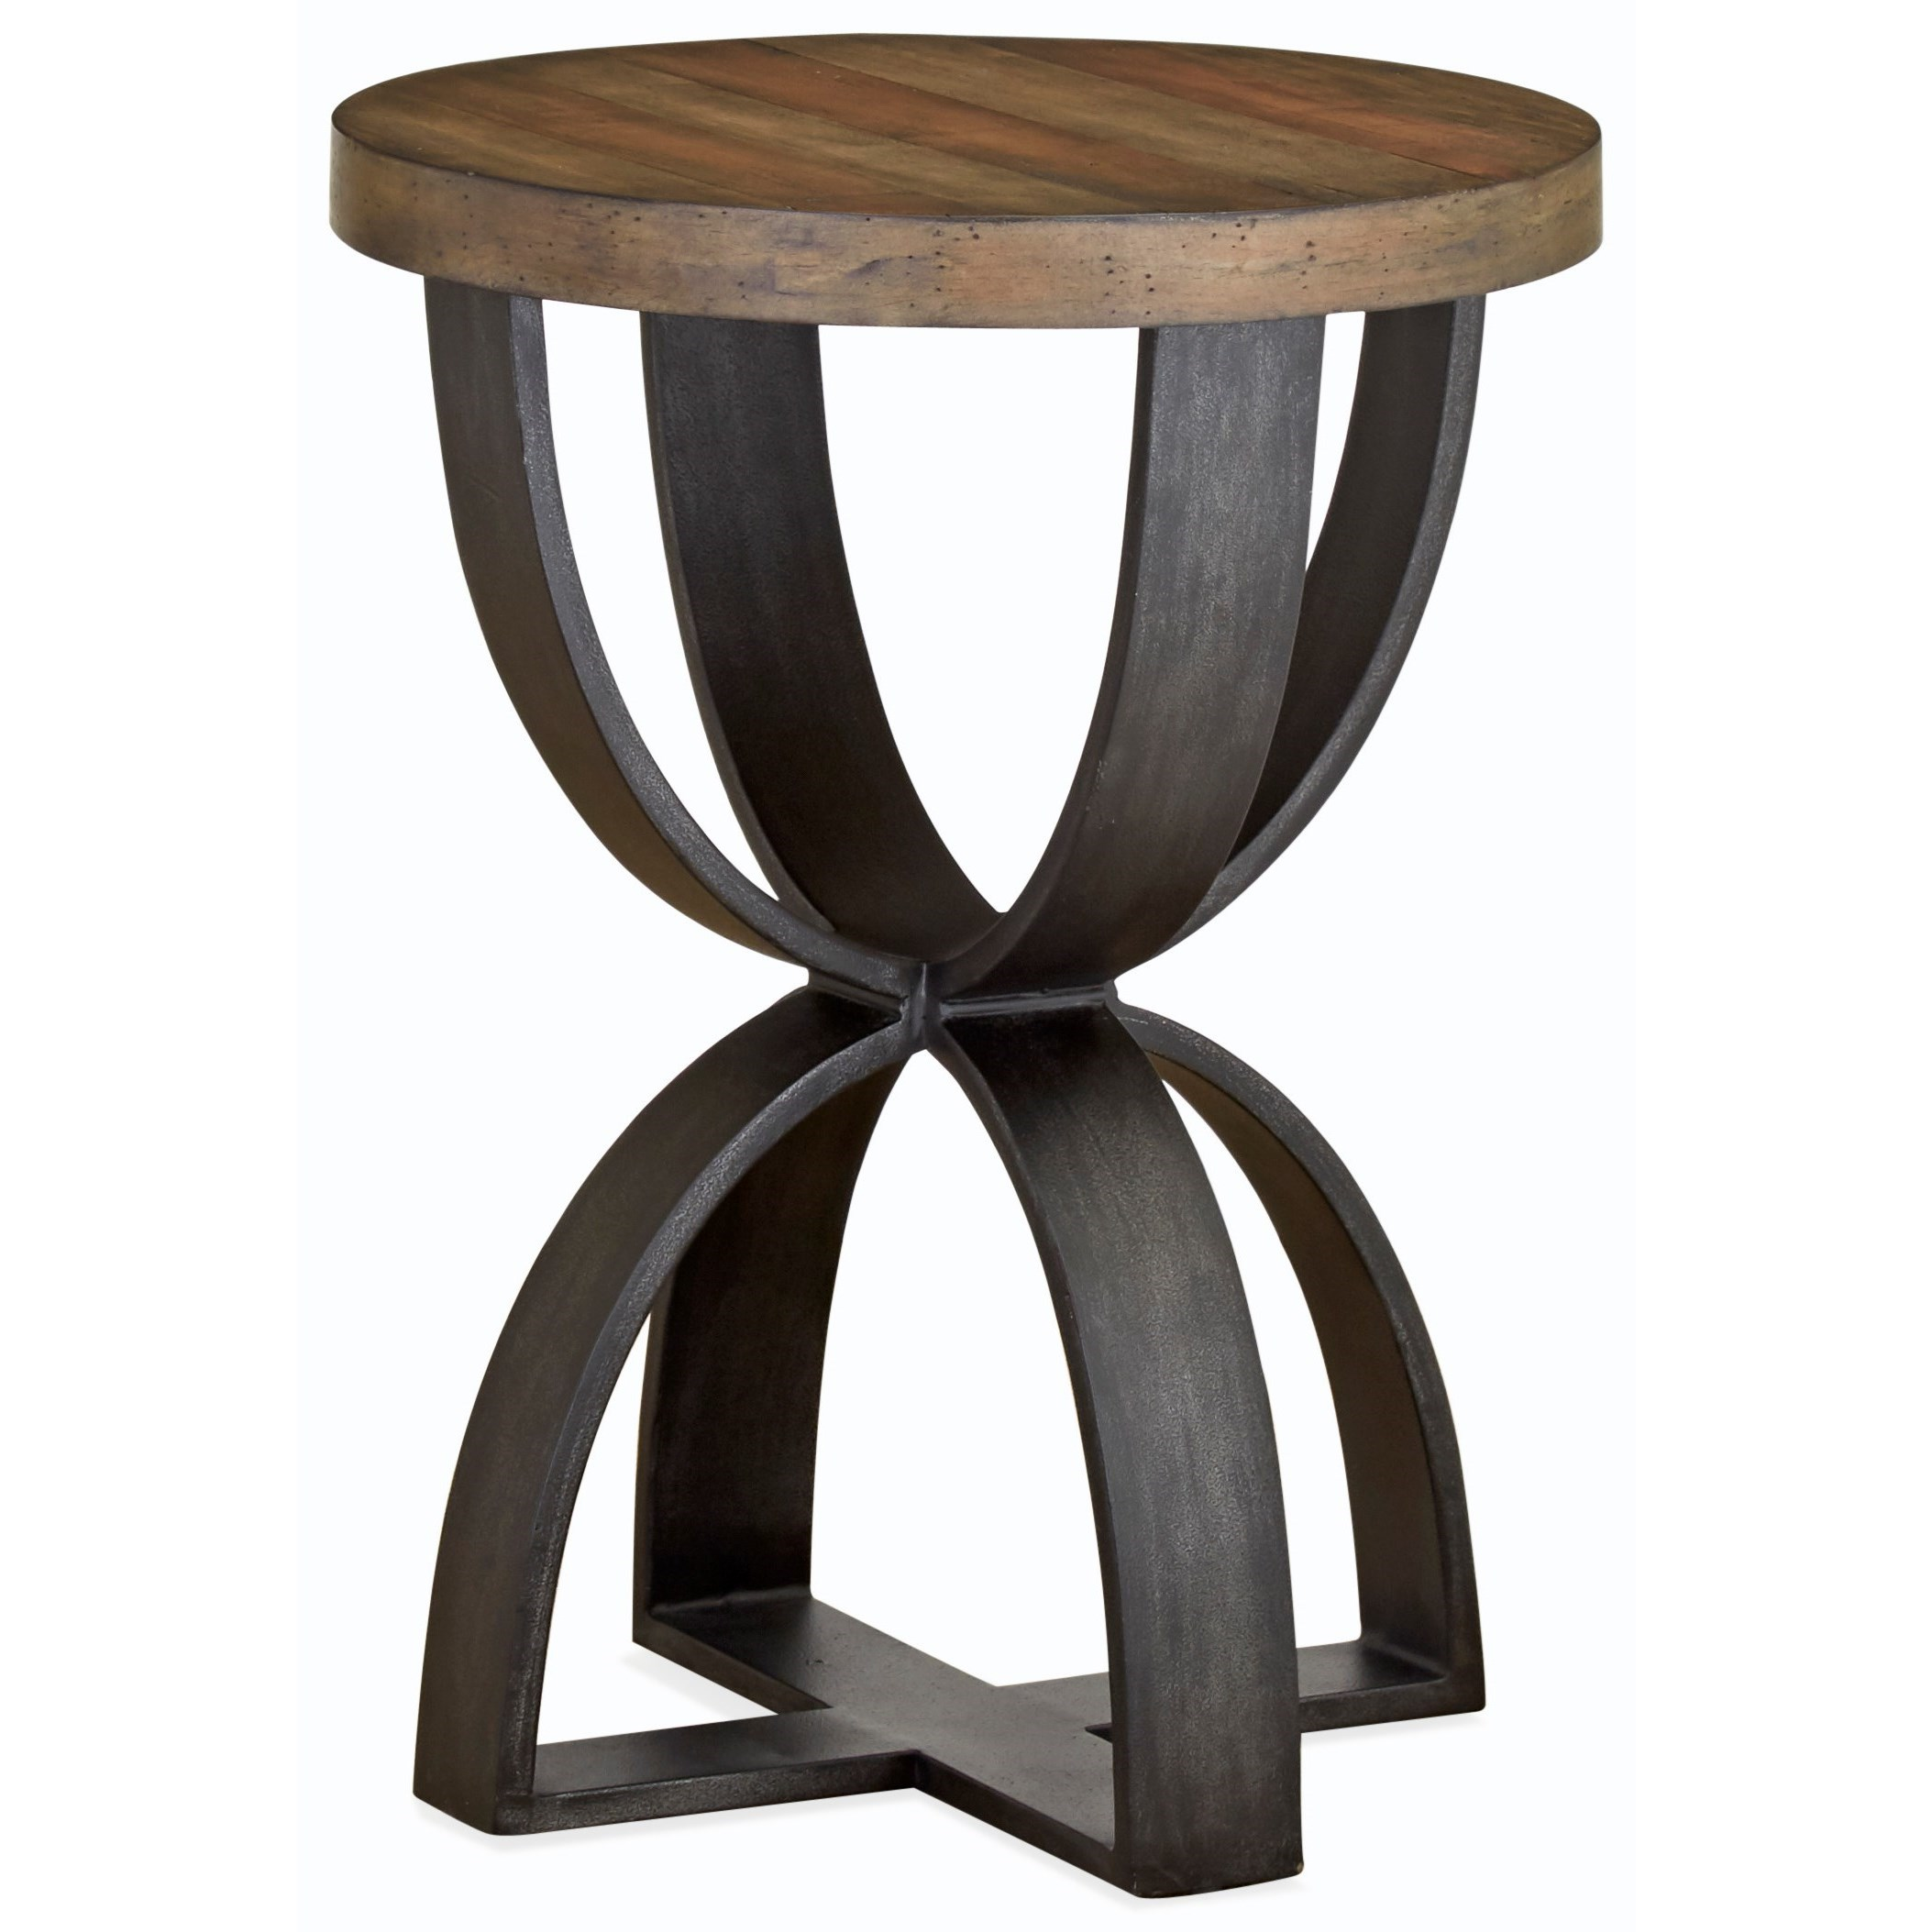 Rustic Round Accent Table of Solid Wood